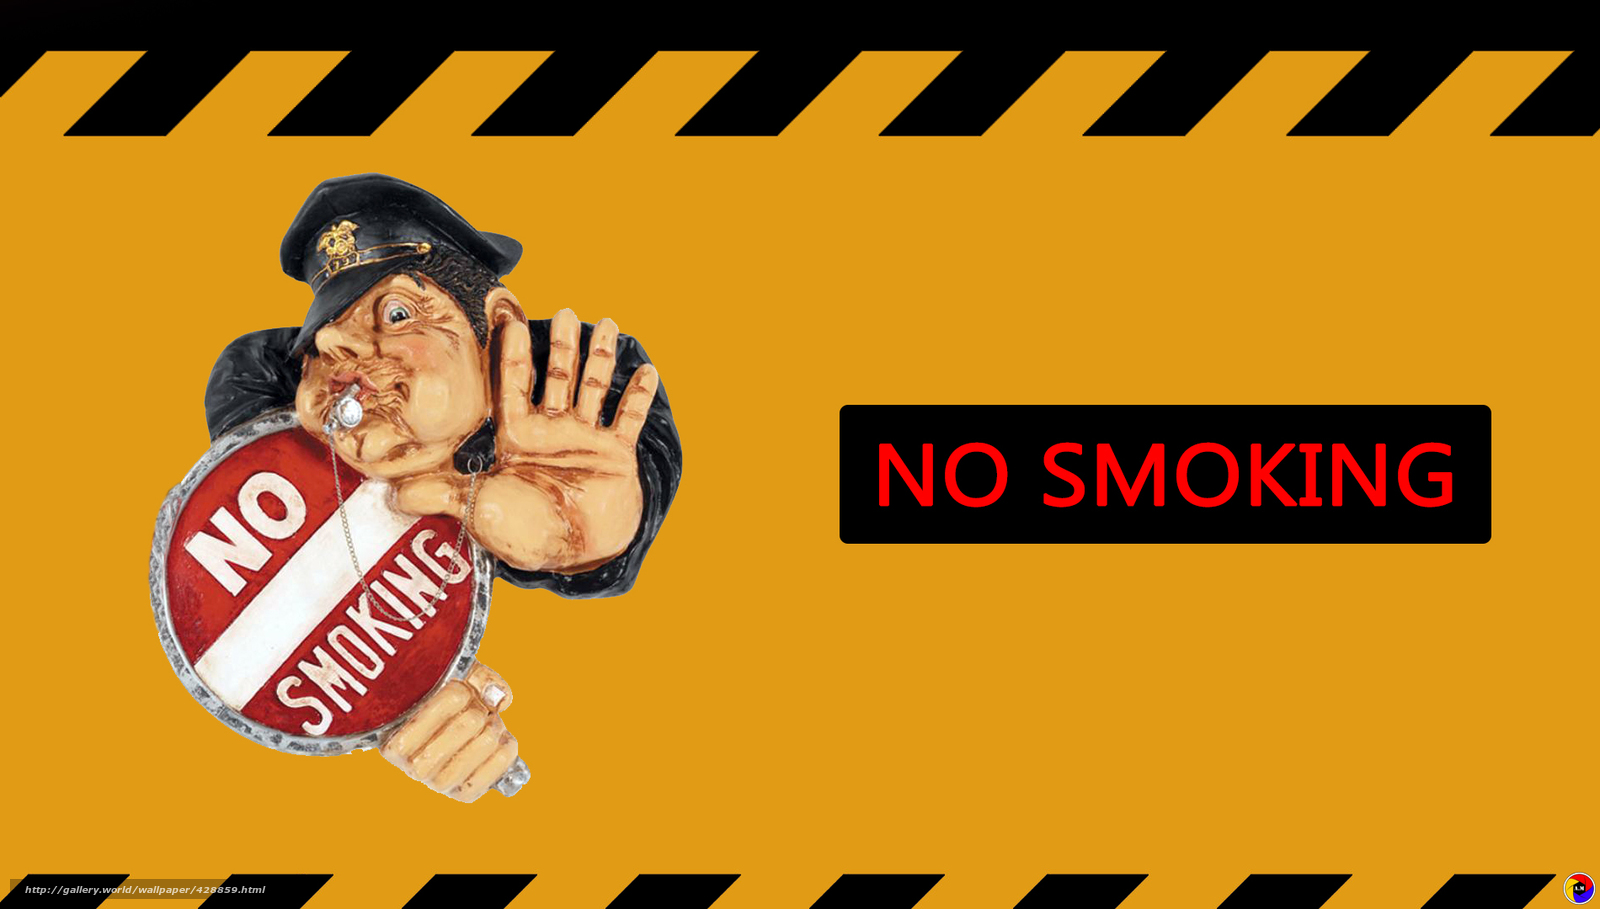 Download wallpaper no smoking no news yelow free - No smoking wallpaper download ...